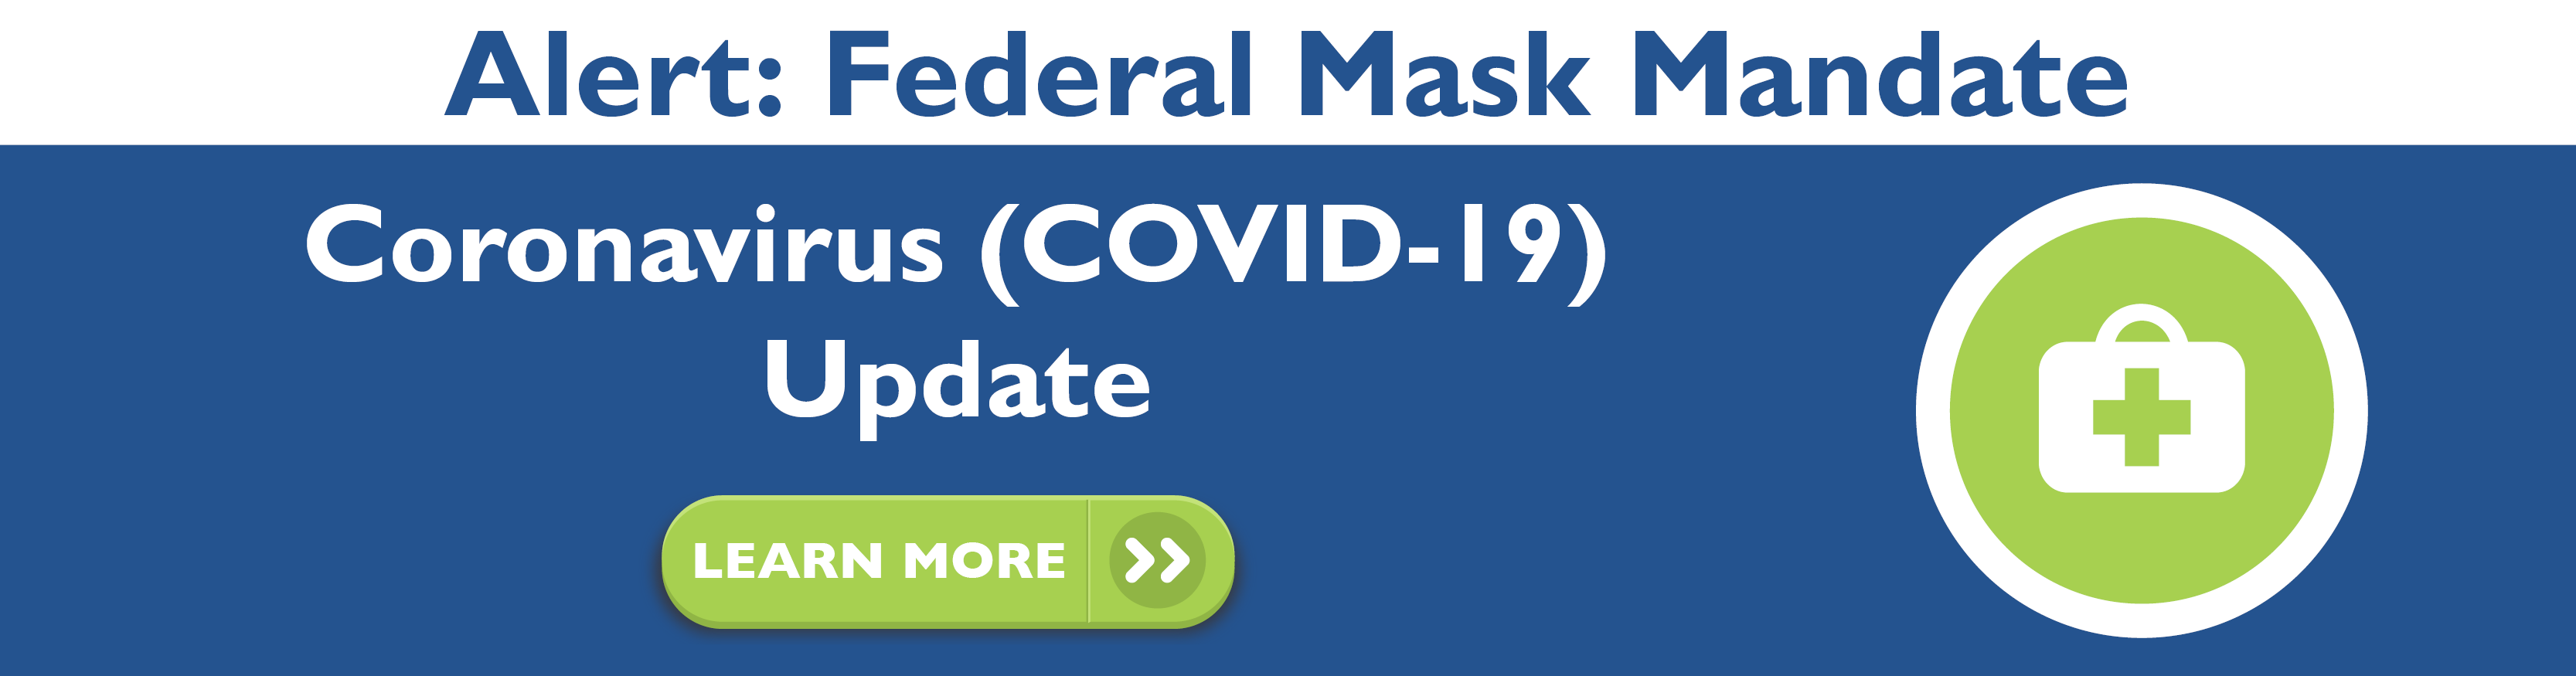 "Text reads ""Alert: Federal Mask Mandate."" Followed with ""Learn More button""."